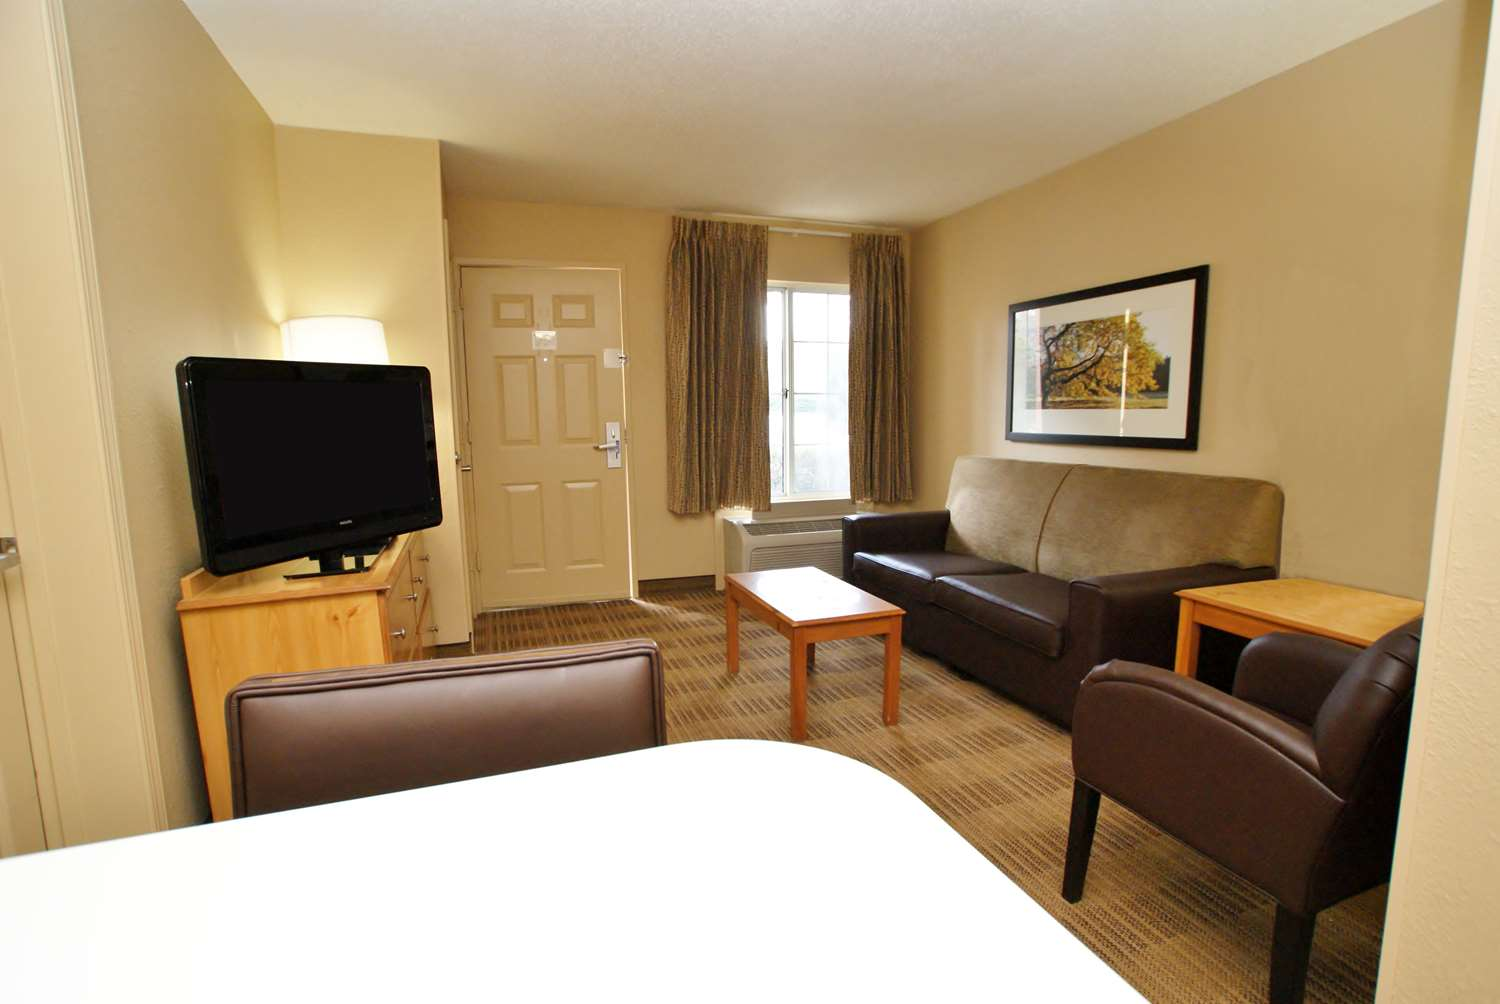 Extended Stay America Hotel Sorrento Mesa San Diego, CA - See Discounts